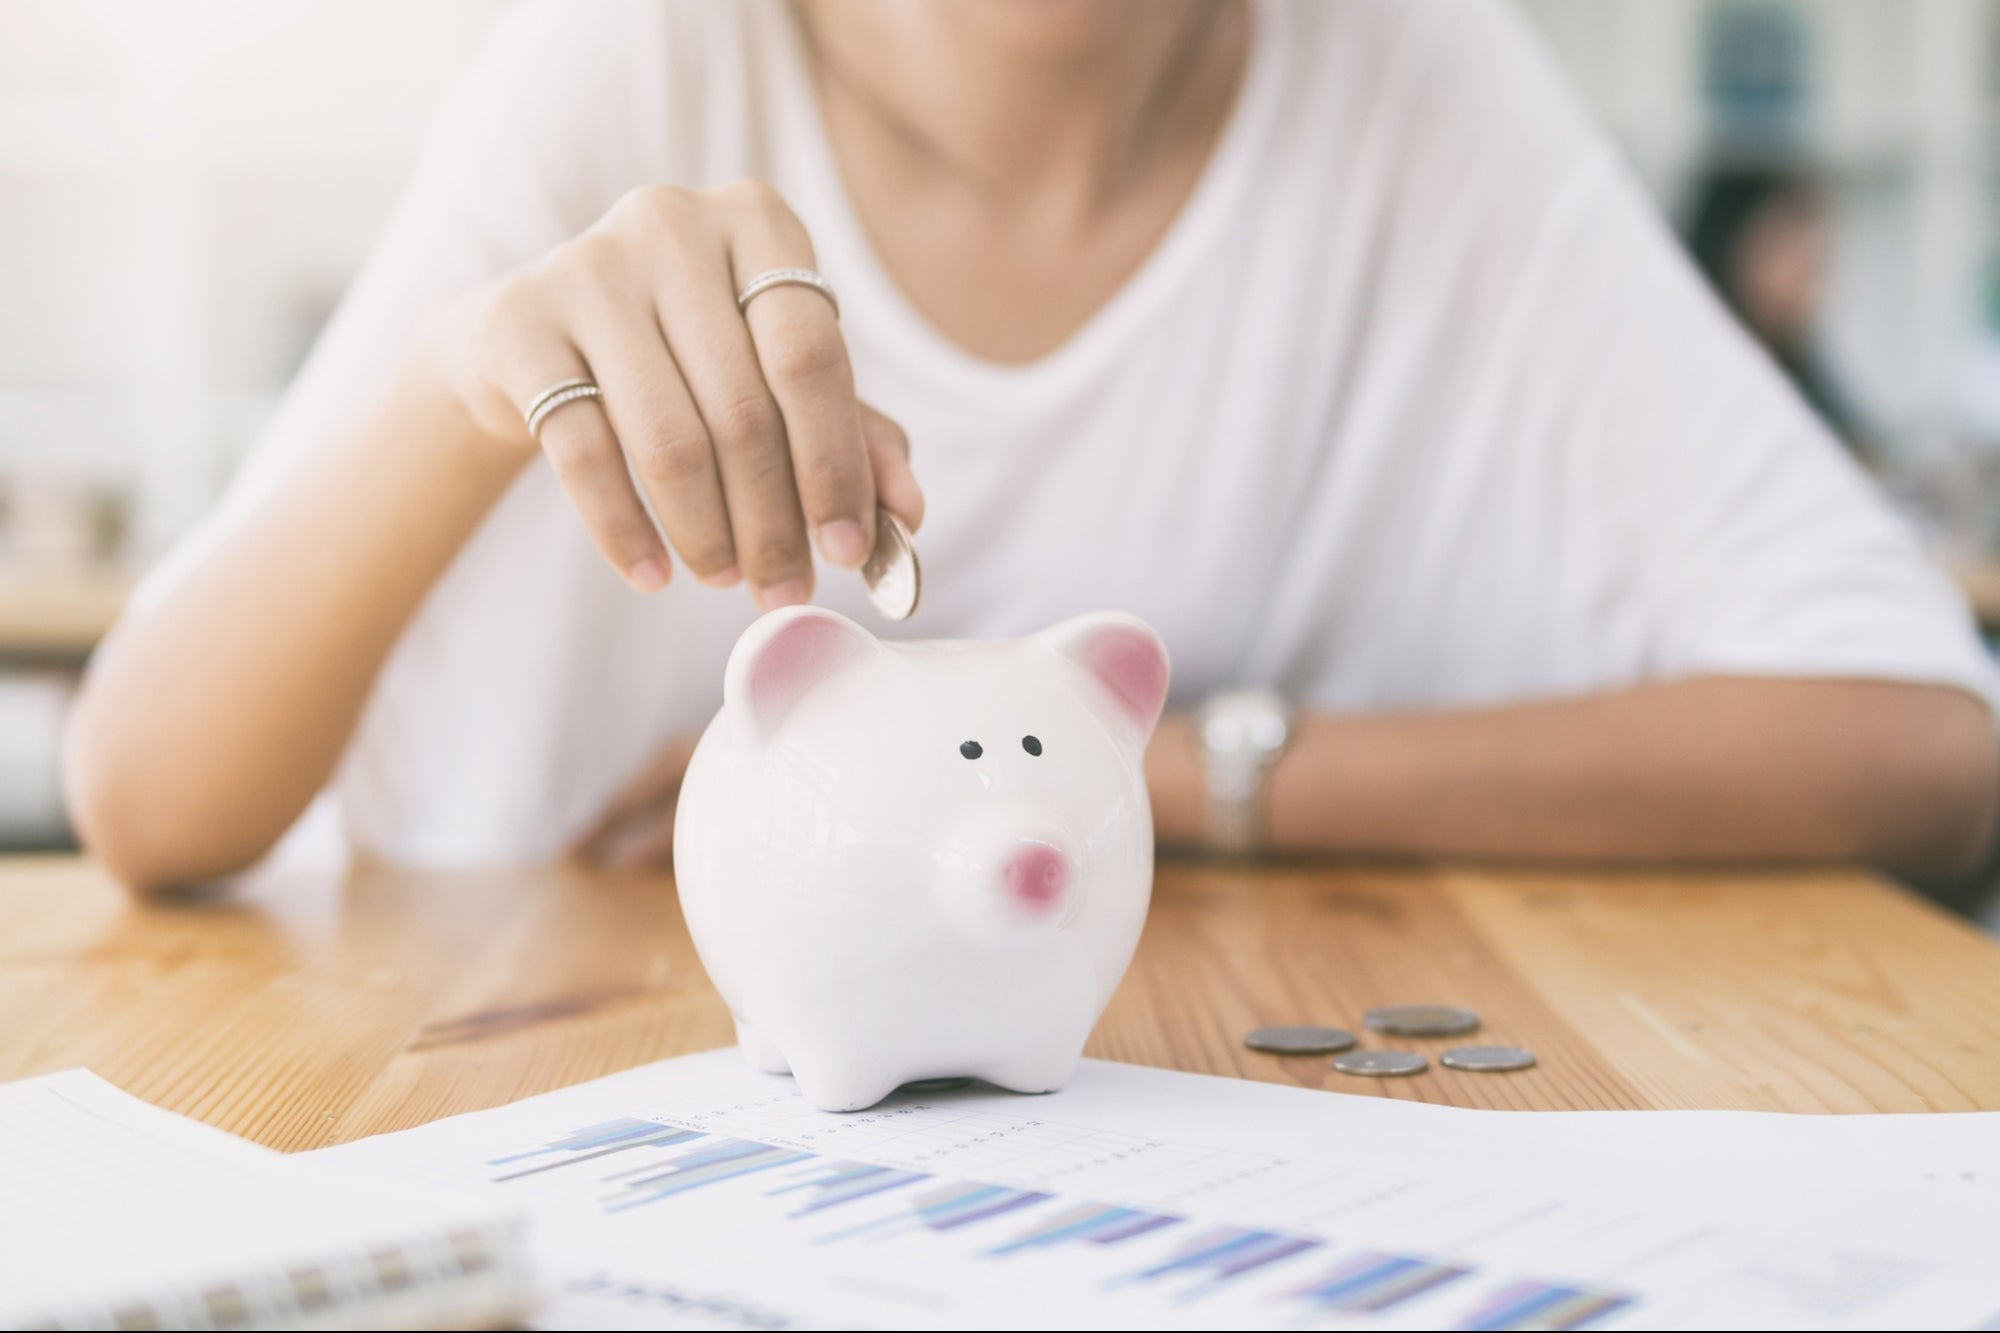 10 Tips to Stay Focused on Your Financial Goals